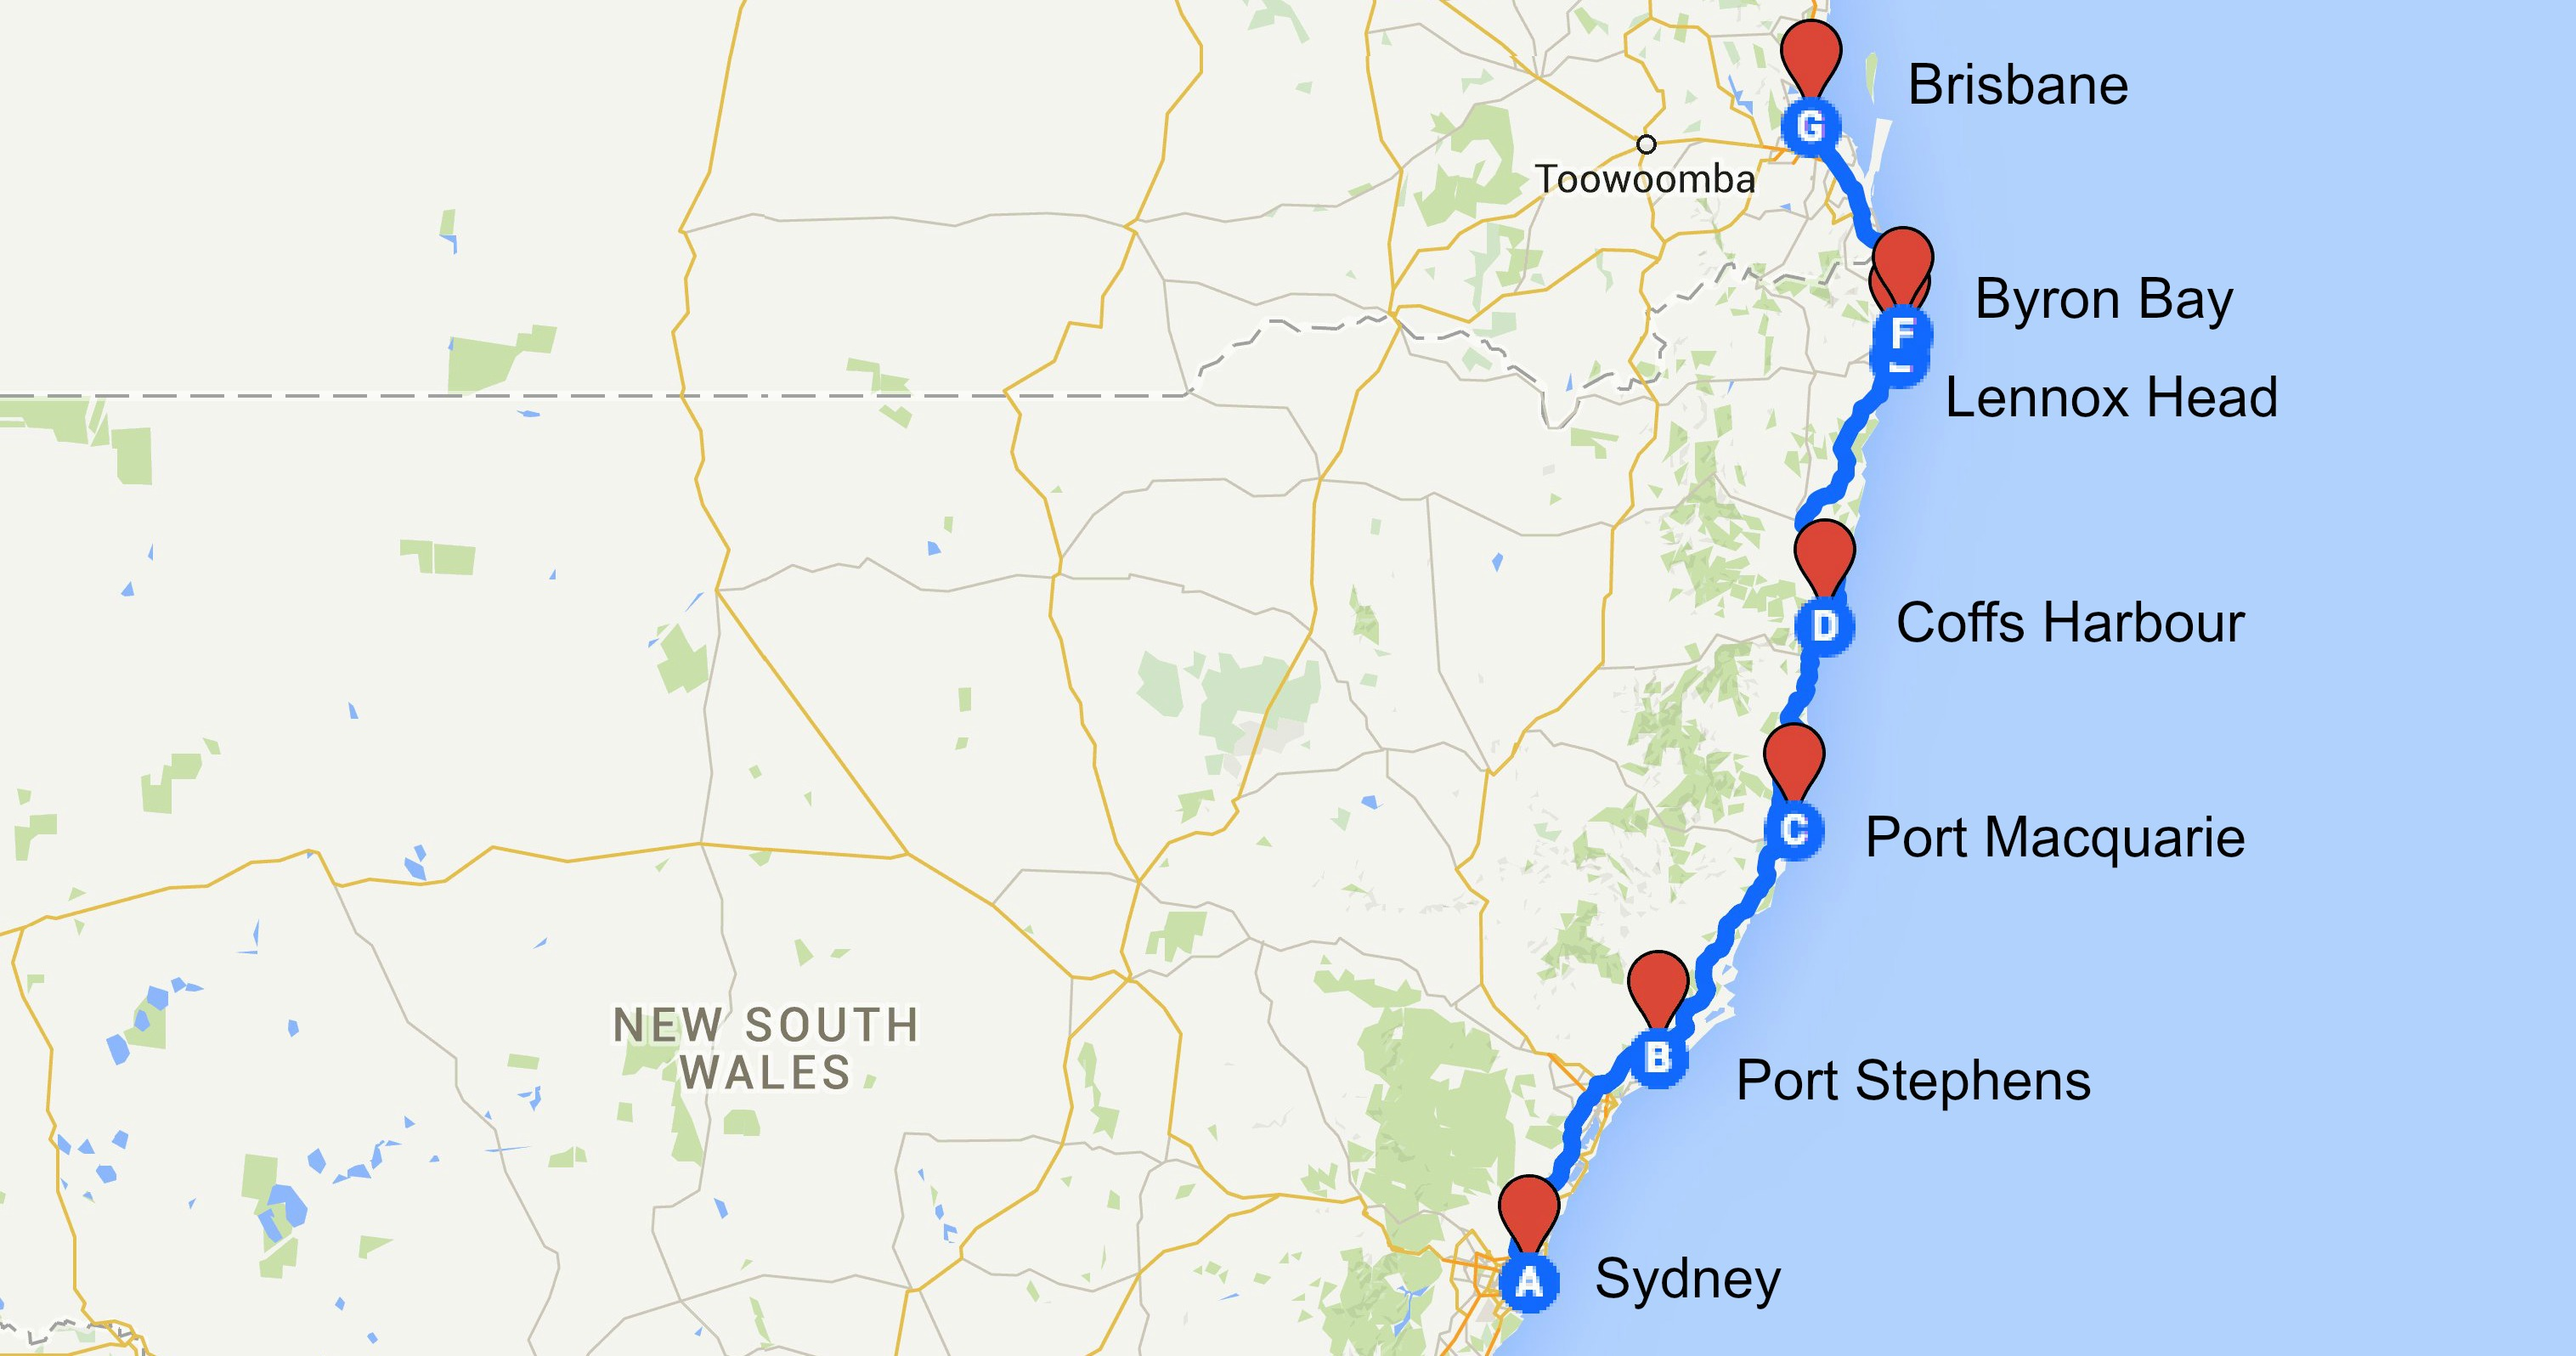 Best Beaches In The World 2016 Discover The East Coast Road Trip Sydney To Byron Bay To